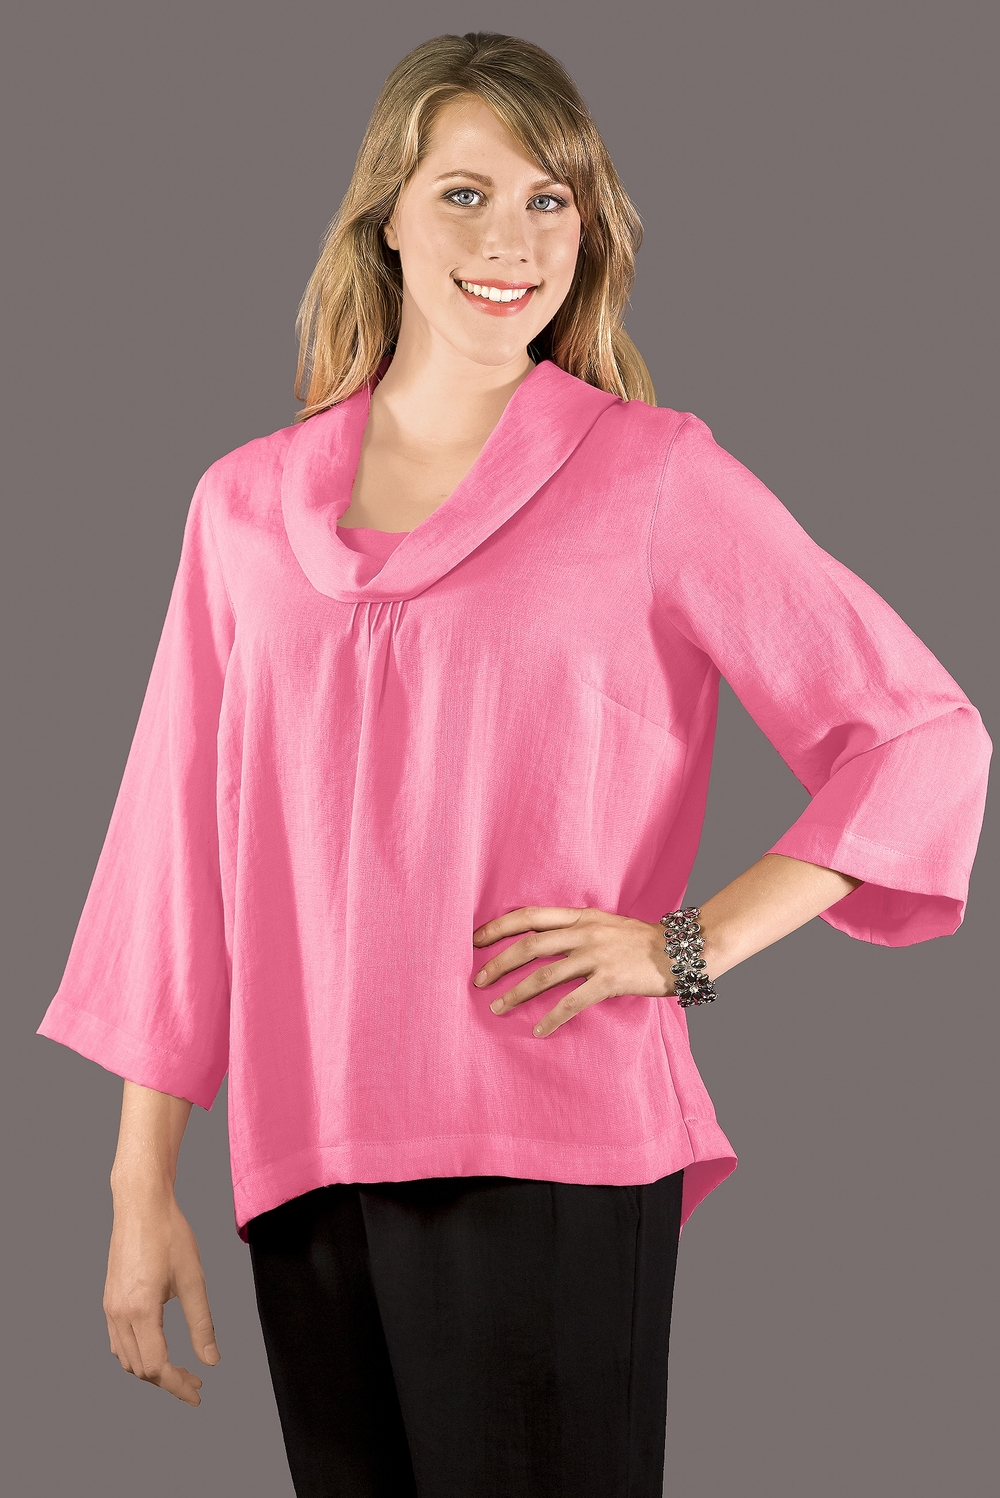 AA129 - Short Cowlneck Pullover    CL3684 - Peony